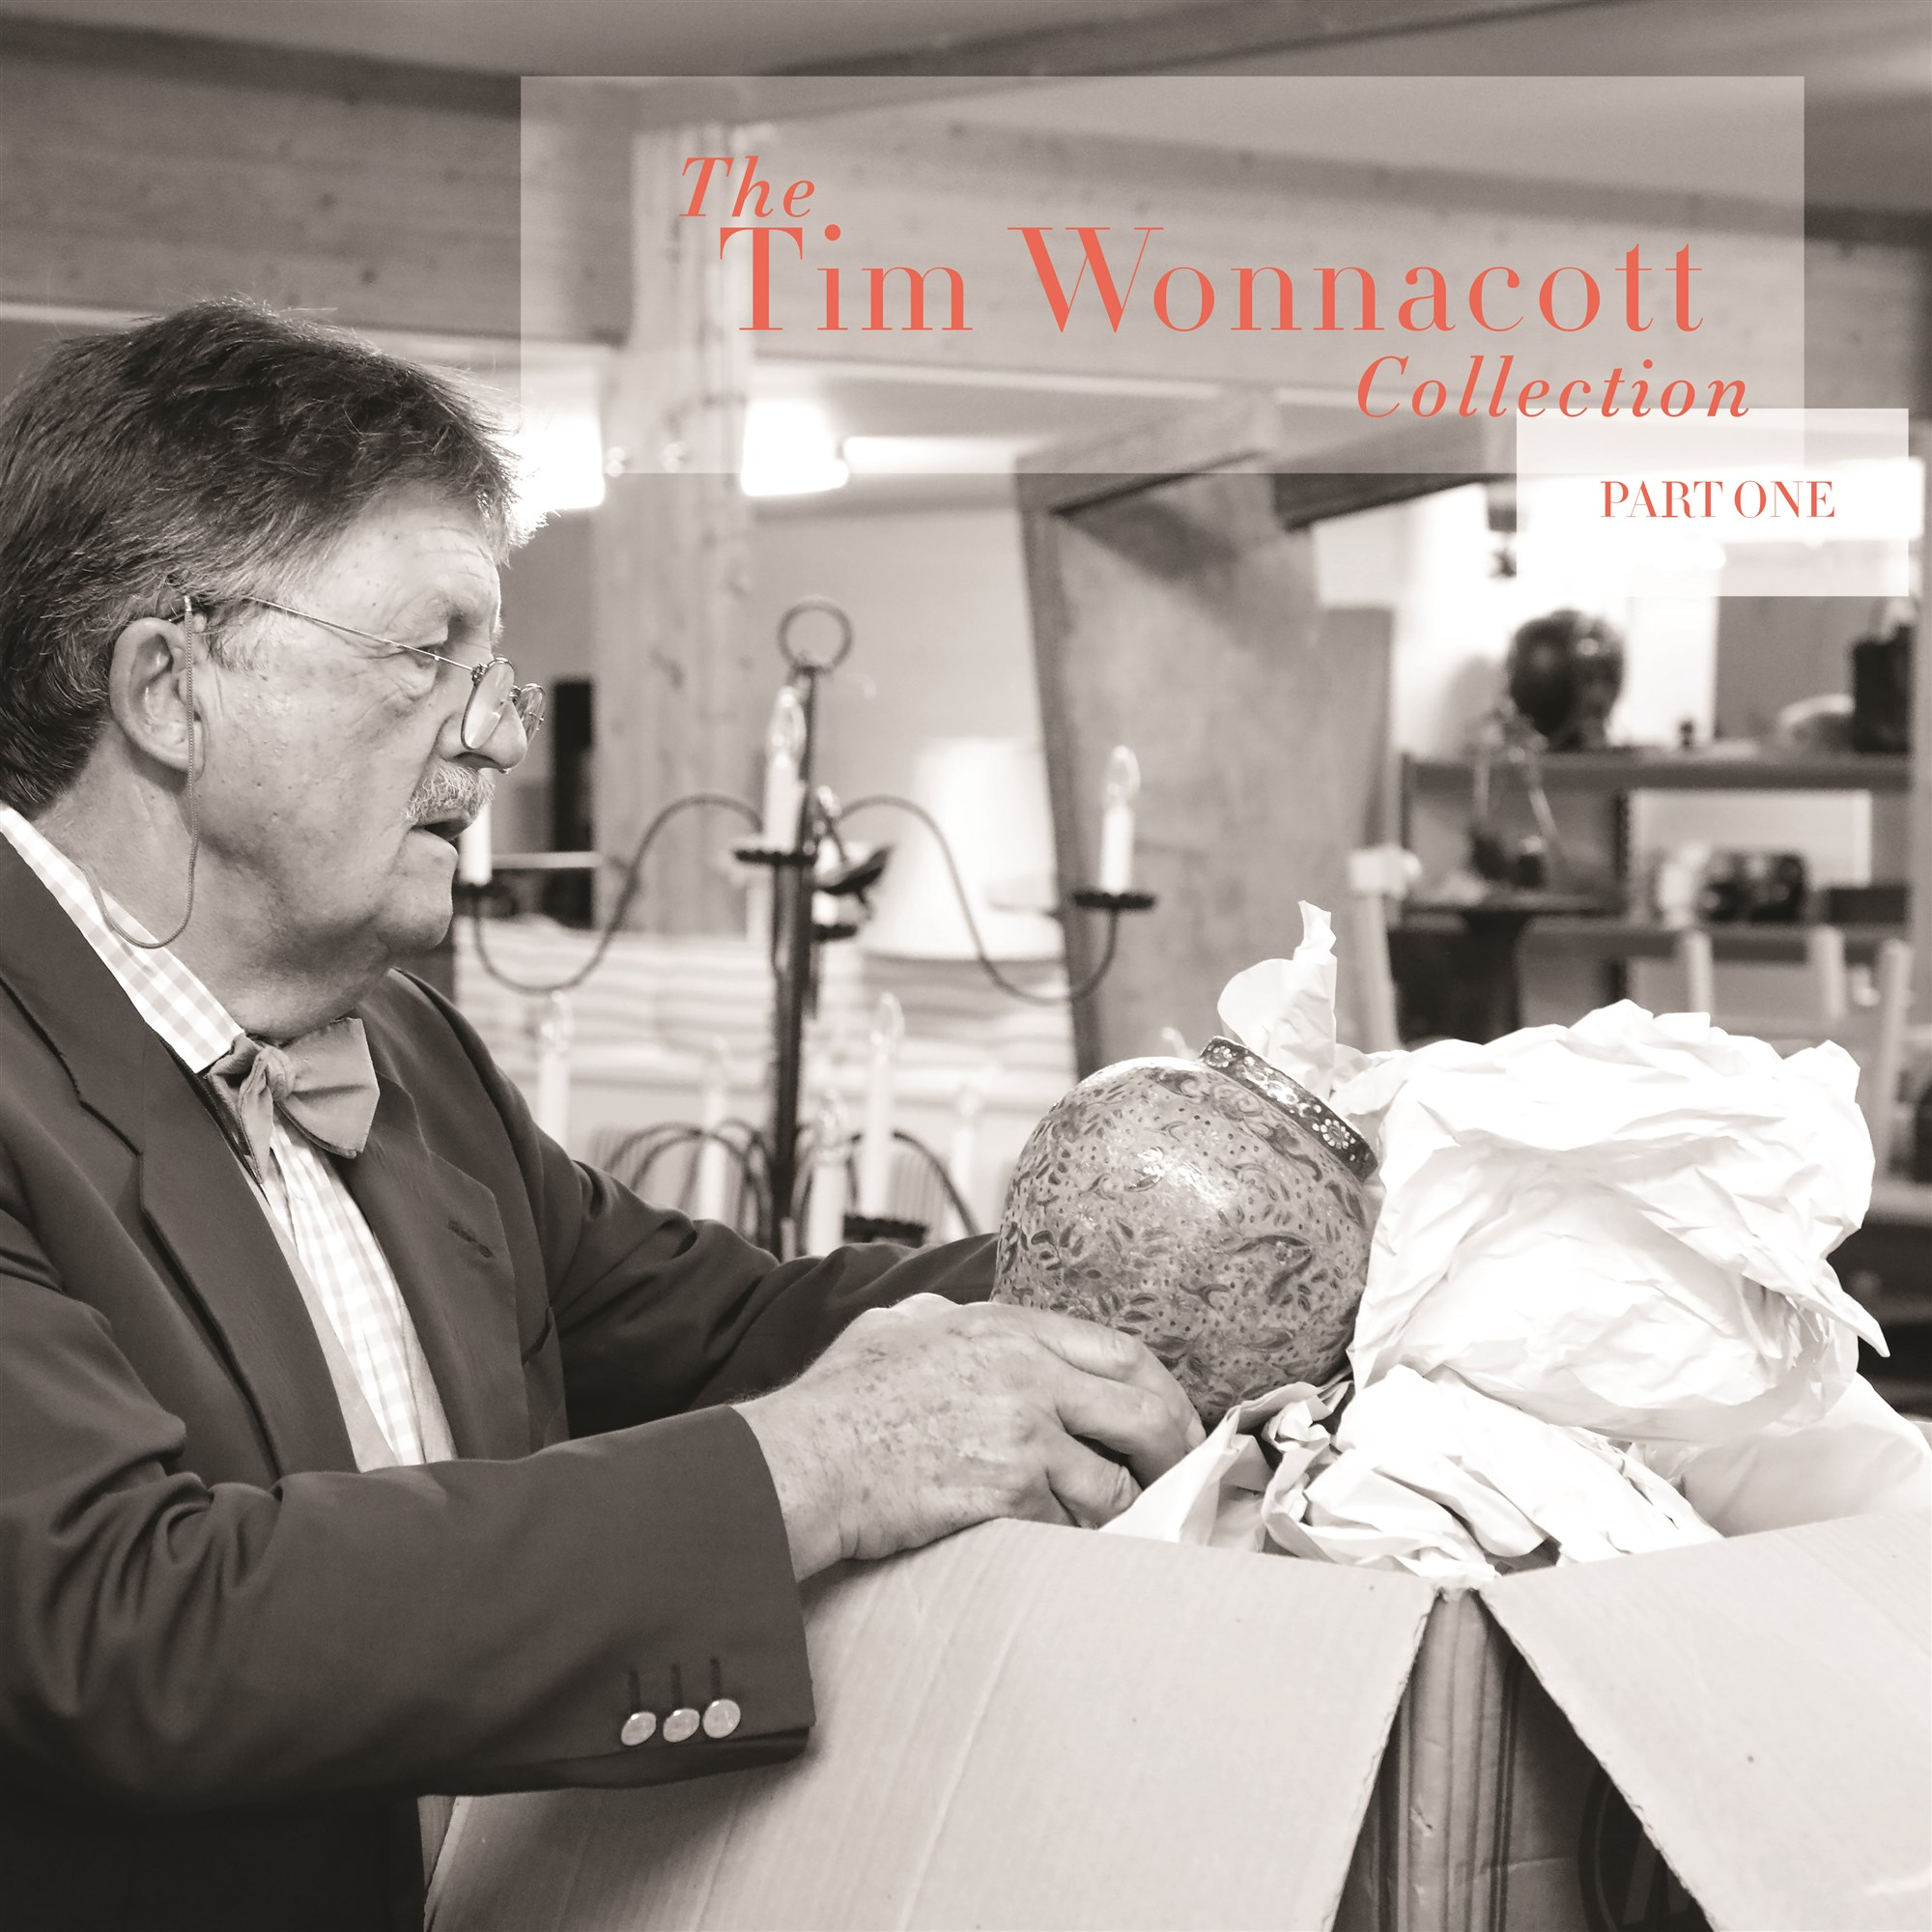 The Tim Wonnacott Collection: Part 1 at Sworders Fine Art